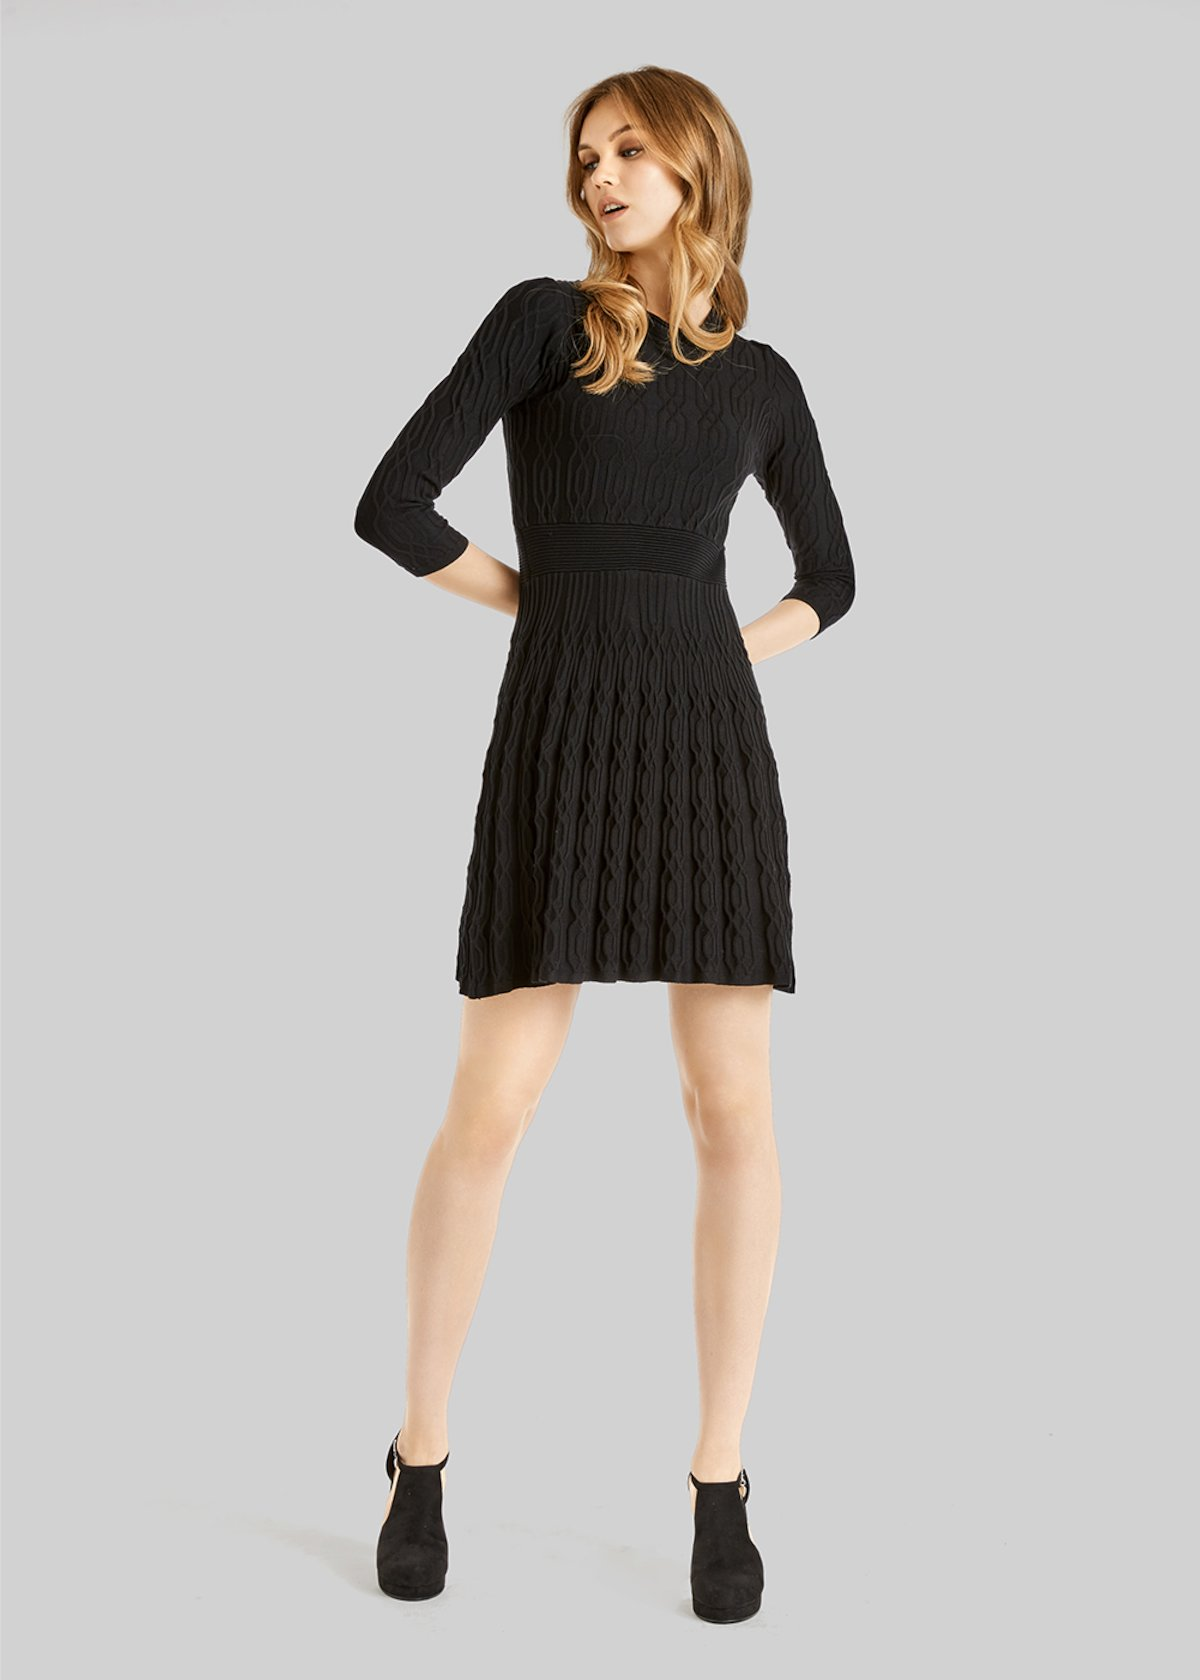 Astrid knit dress with full skirt - Black - Woman - Category image